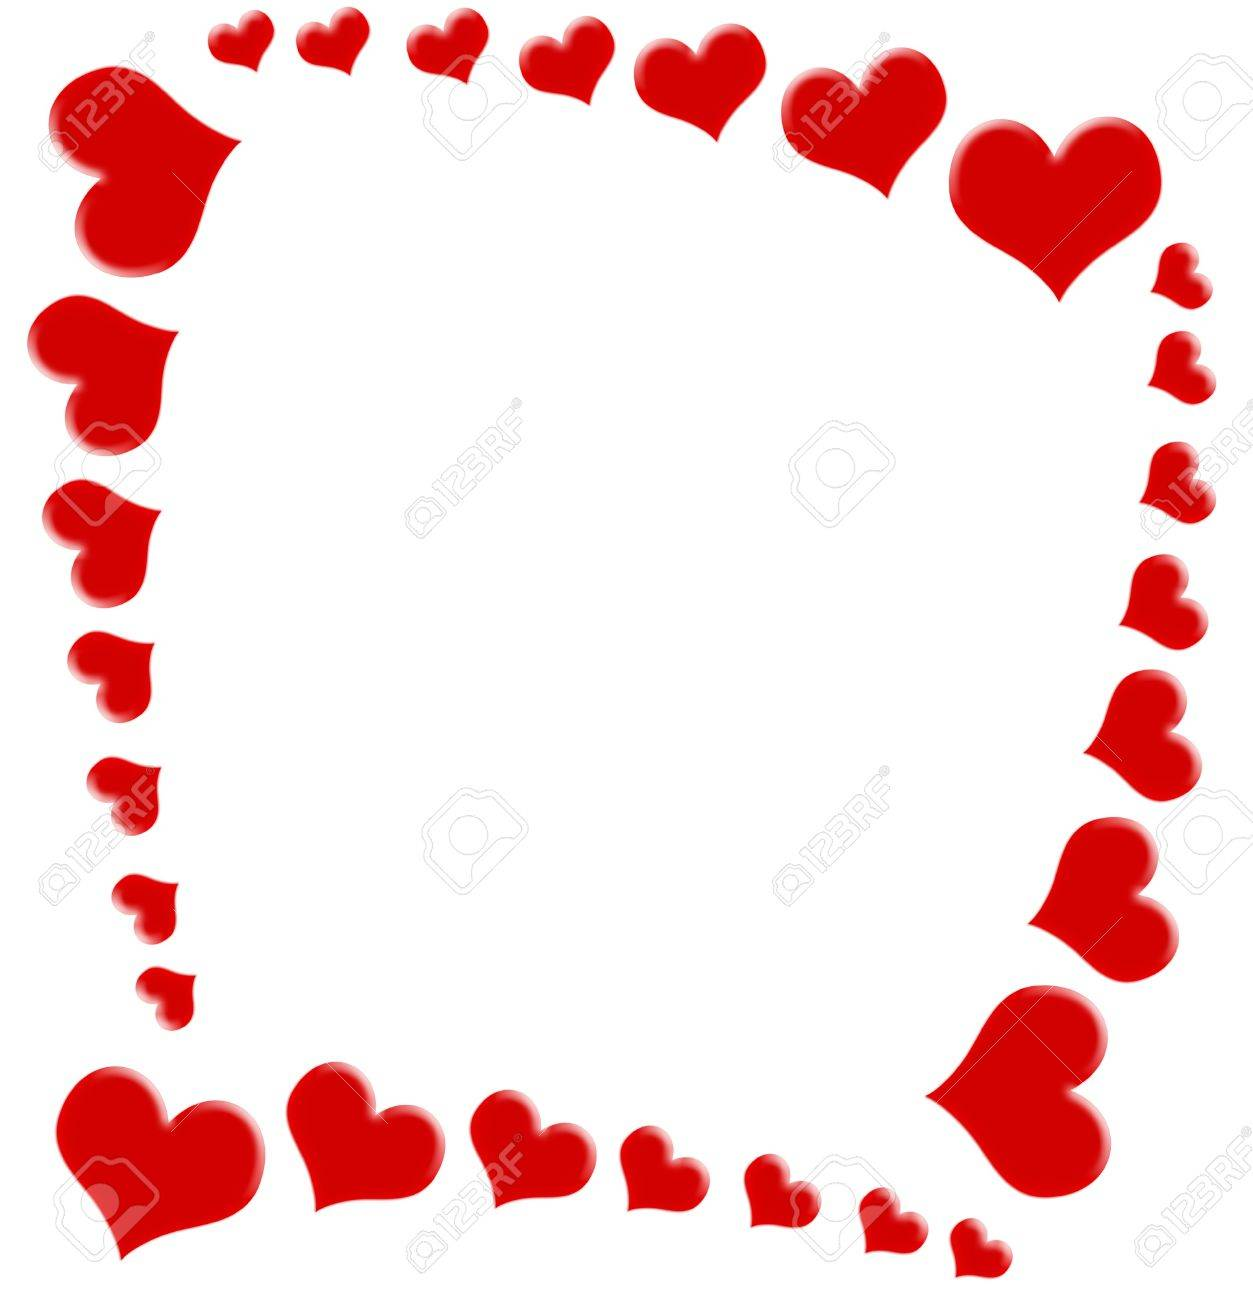 1253x1300 Red Hearts On A White Background, Heart Background Stock Photo